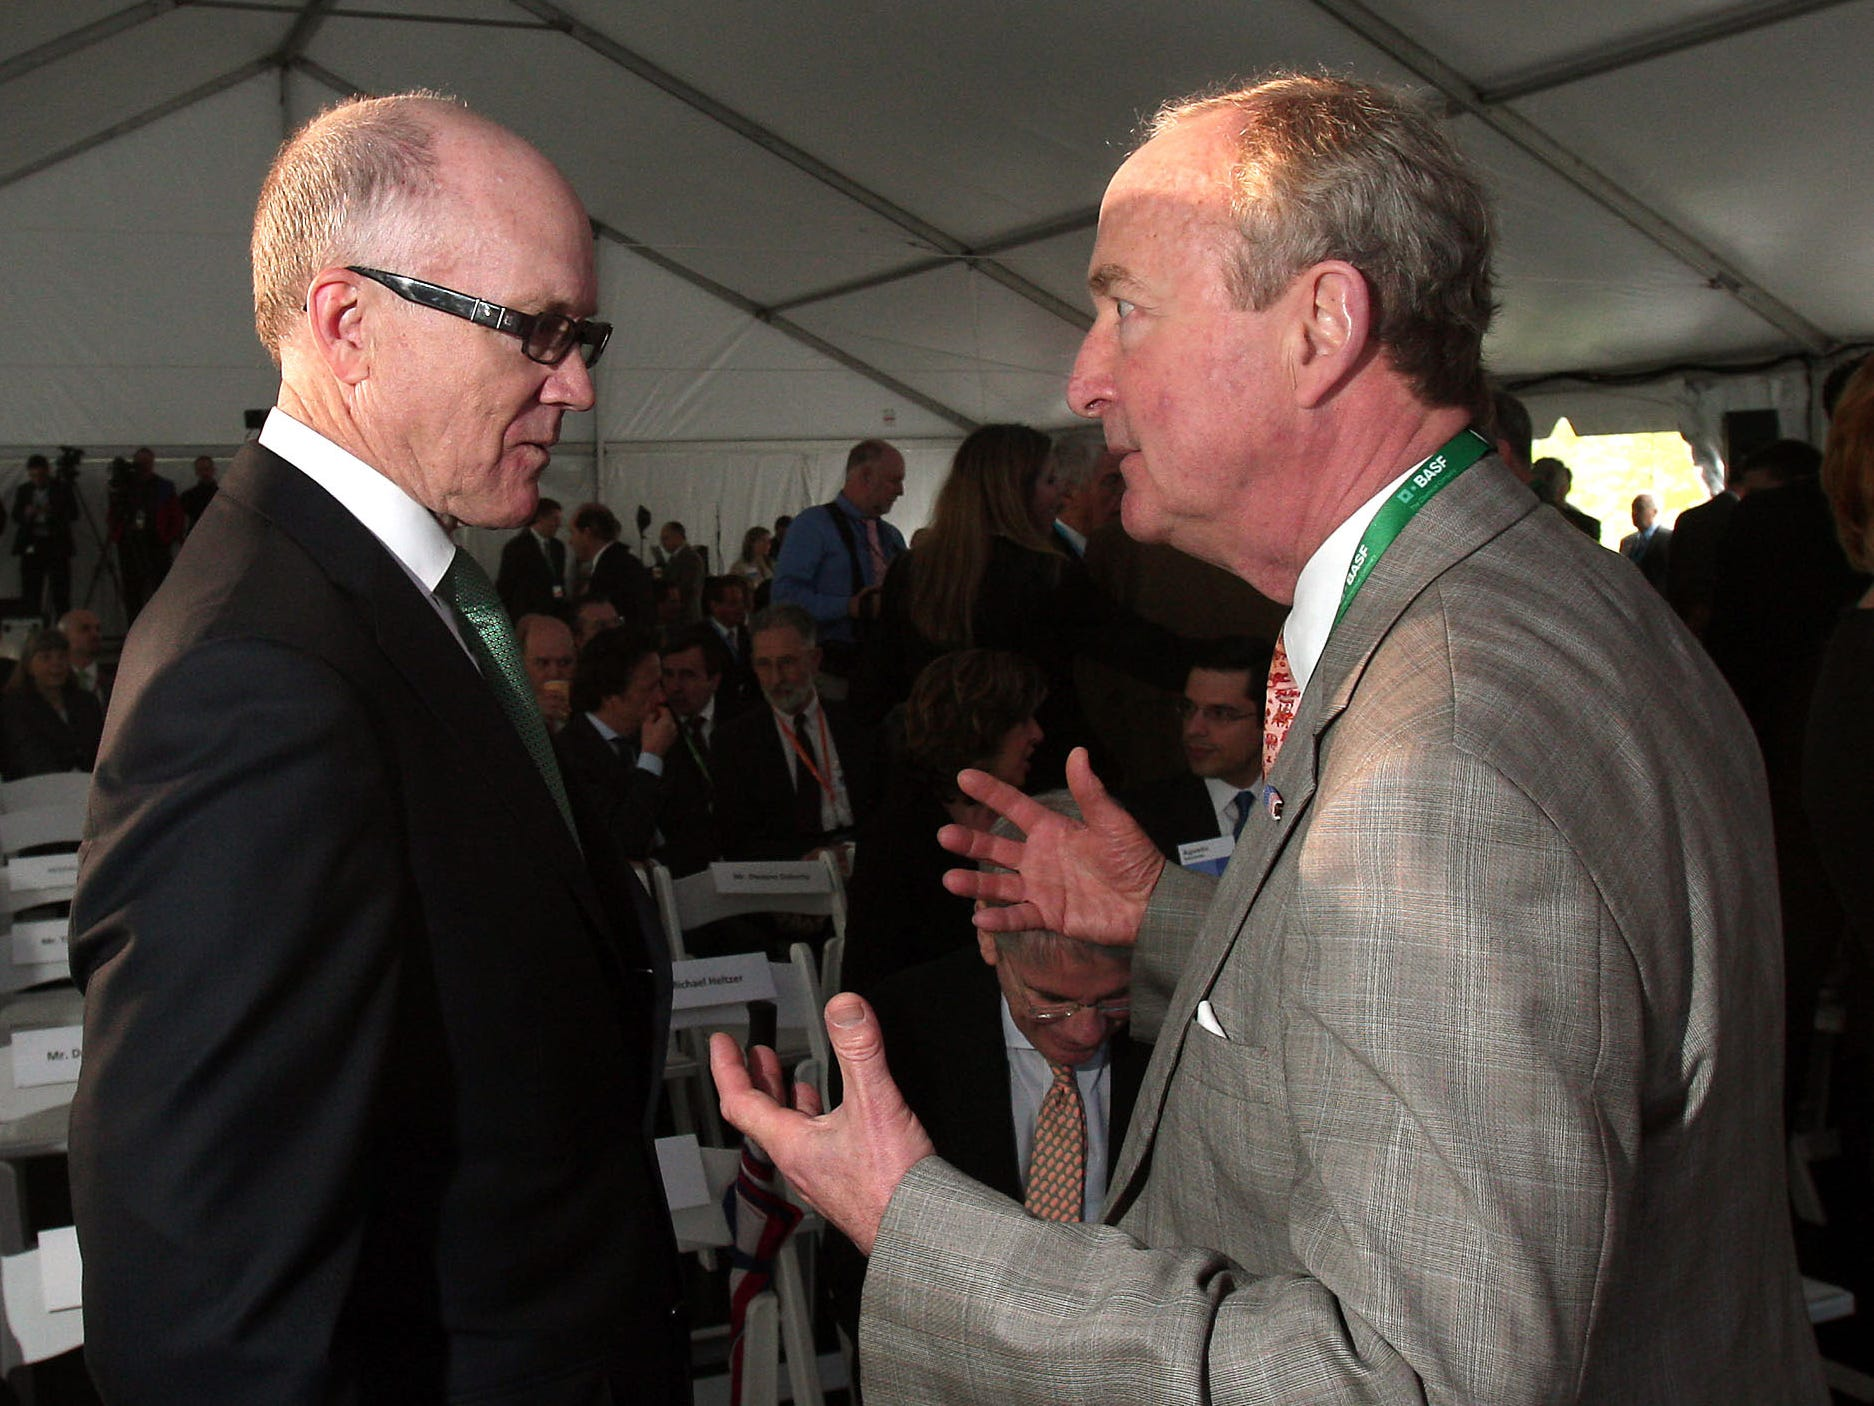 Florham Park, 5/4/12---NY Jets owner Woody Johnson, l, talks with Congressman Rodney Frelinghuysen before the official opening of BASF's new North American headquarters building on Park Avenue in Florham Park. The 325,000 square foot building at The Green at Florham Park, is designed to achieve LEED double Platinum certification.  